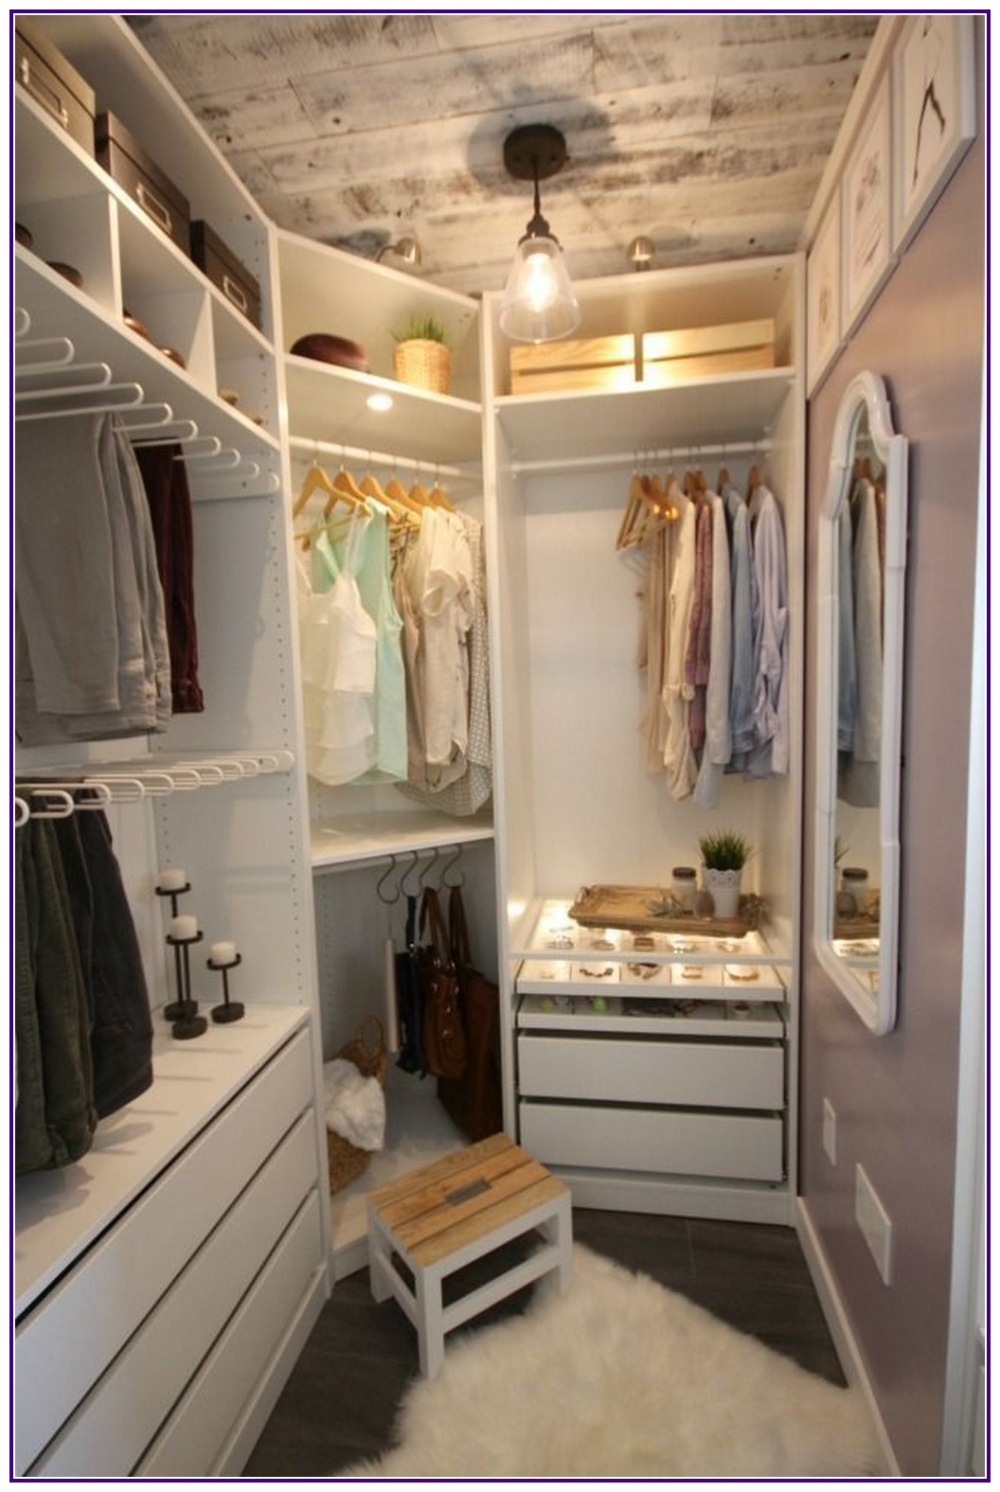 10 Stunning Space Saving Ideas For Apartment Aux Pays Des Fleurs Com Master Bedroom Closets Organization Organizing Walk In Closet Closet Remodel